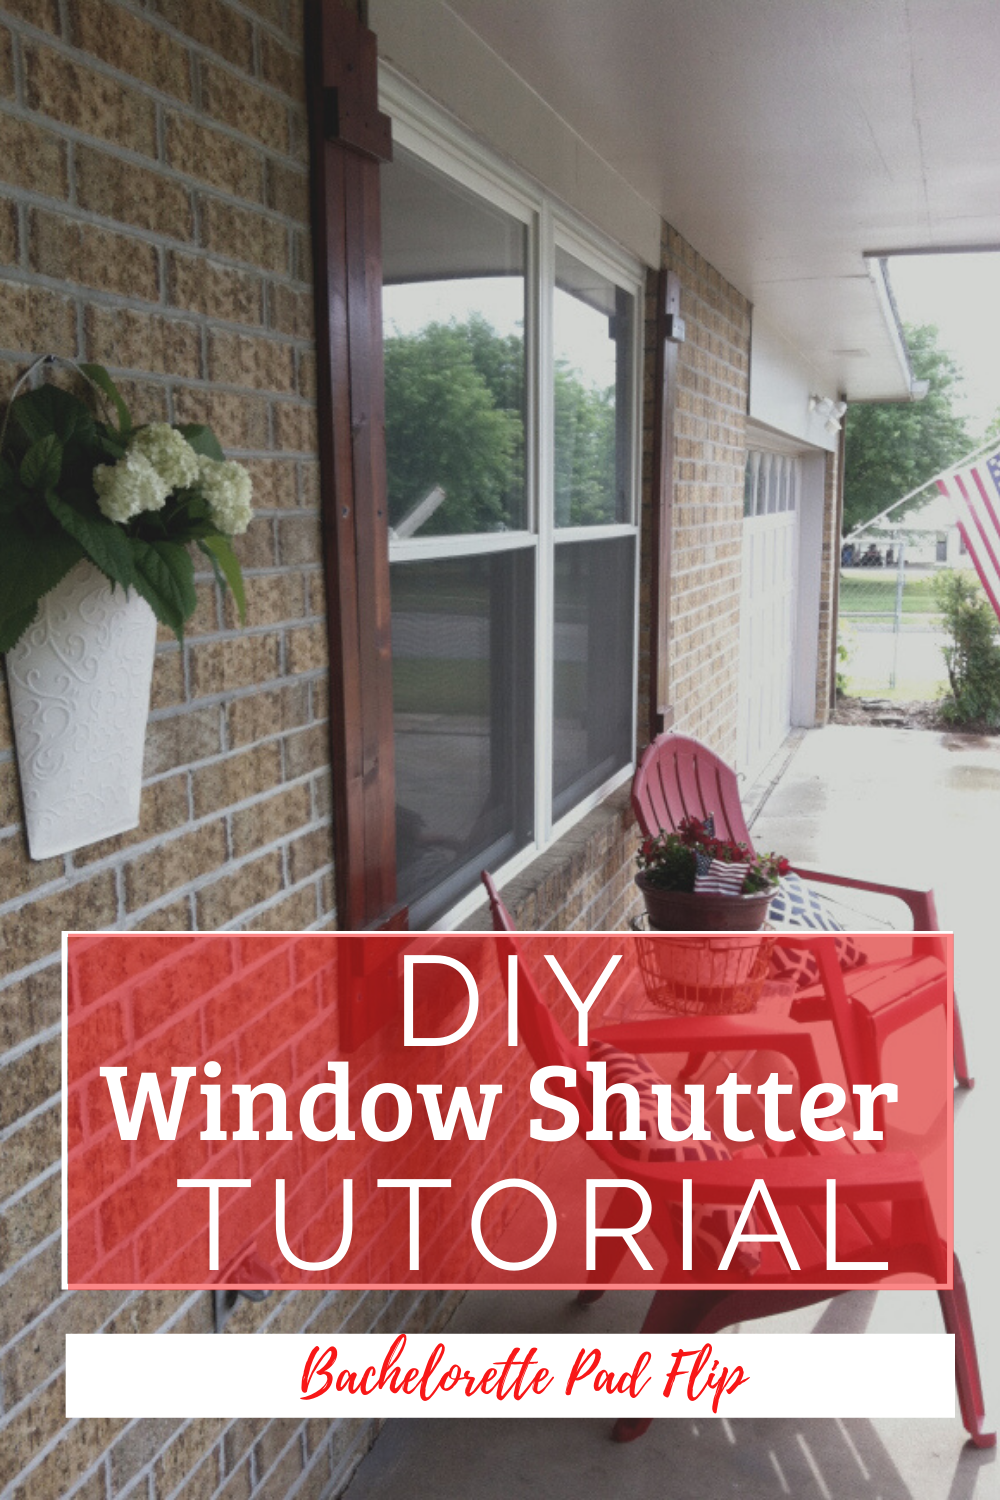 Inexpensive and easy window shutters tutorial. #diyproject #windowshutters #curbappeal